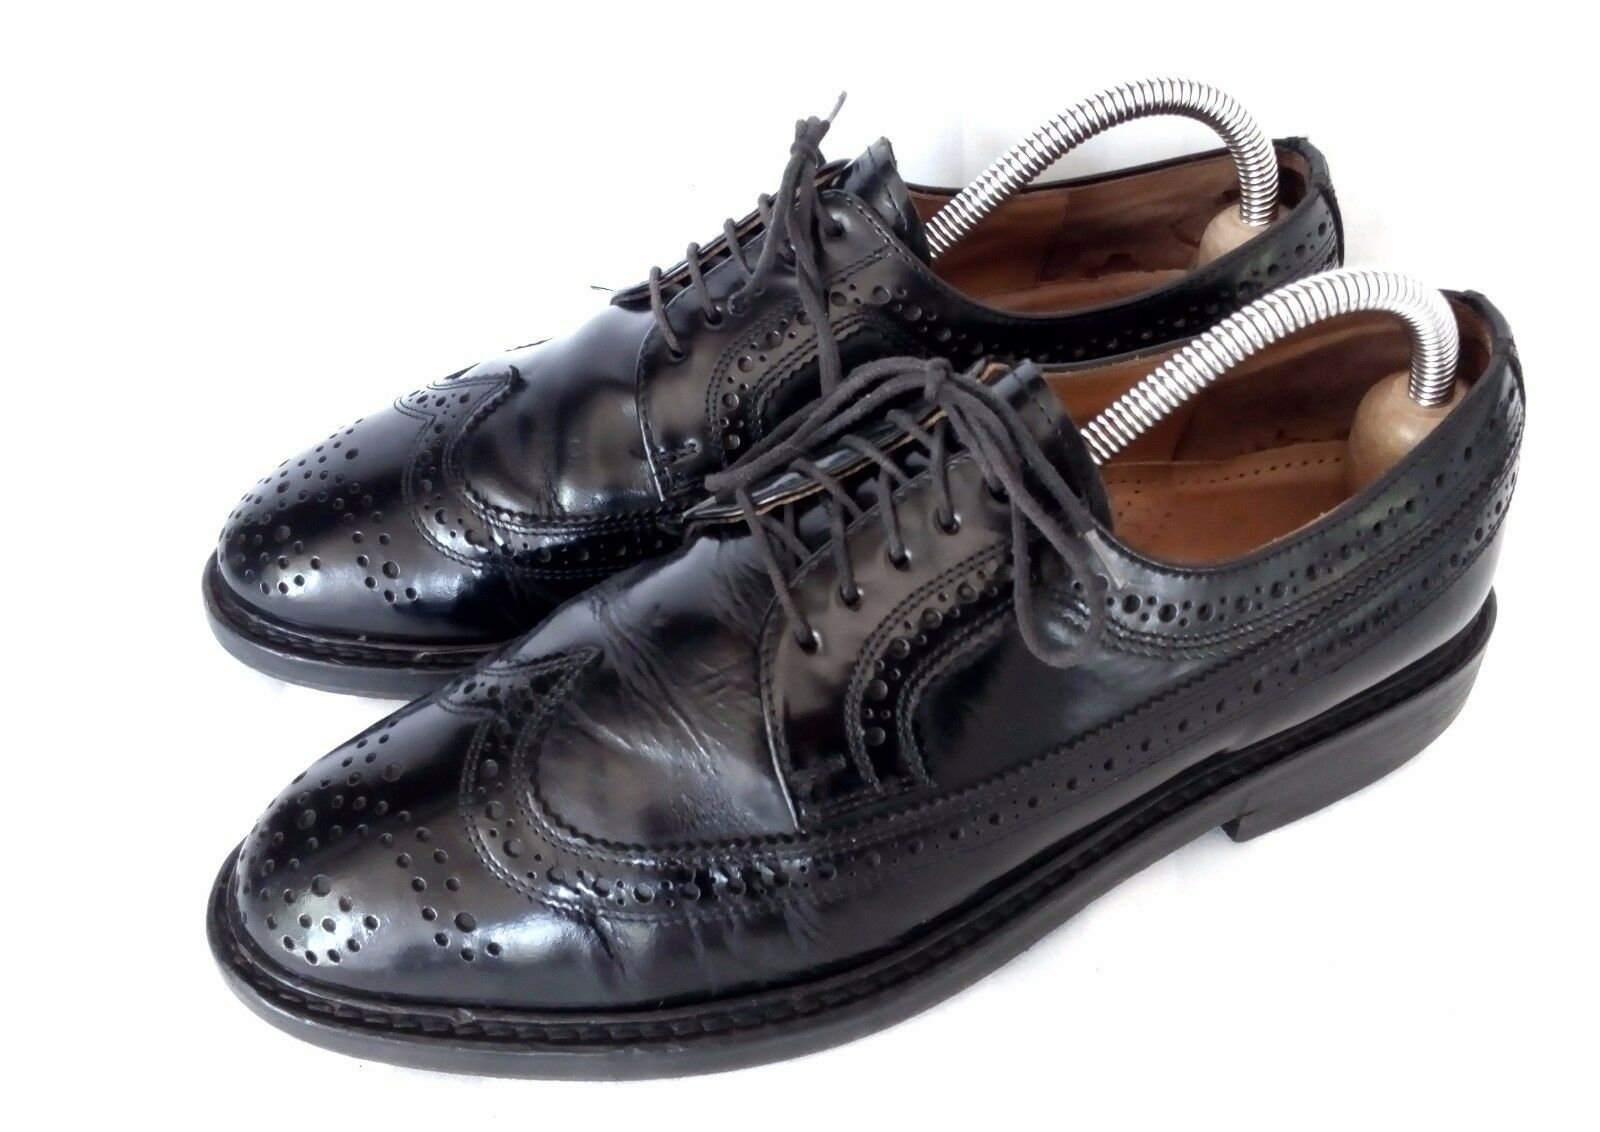 Lloyd New York 8 am Full Brogue Derby Business Herrenschuhe Leder Schwarz 8 / 42